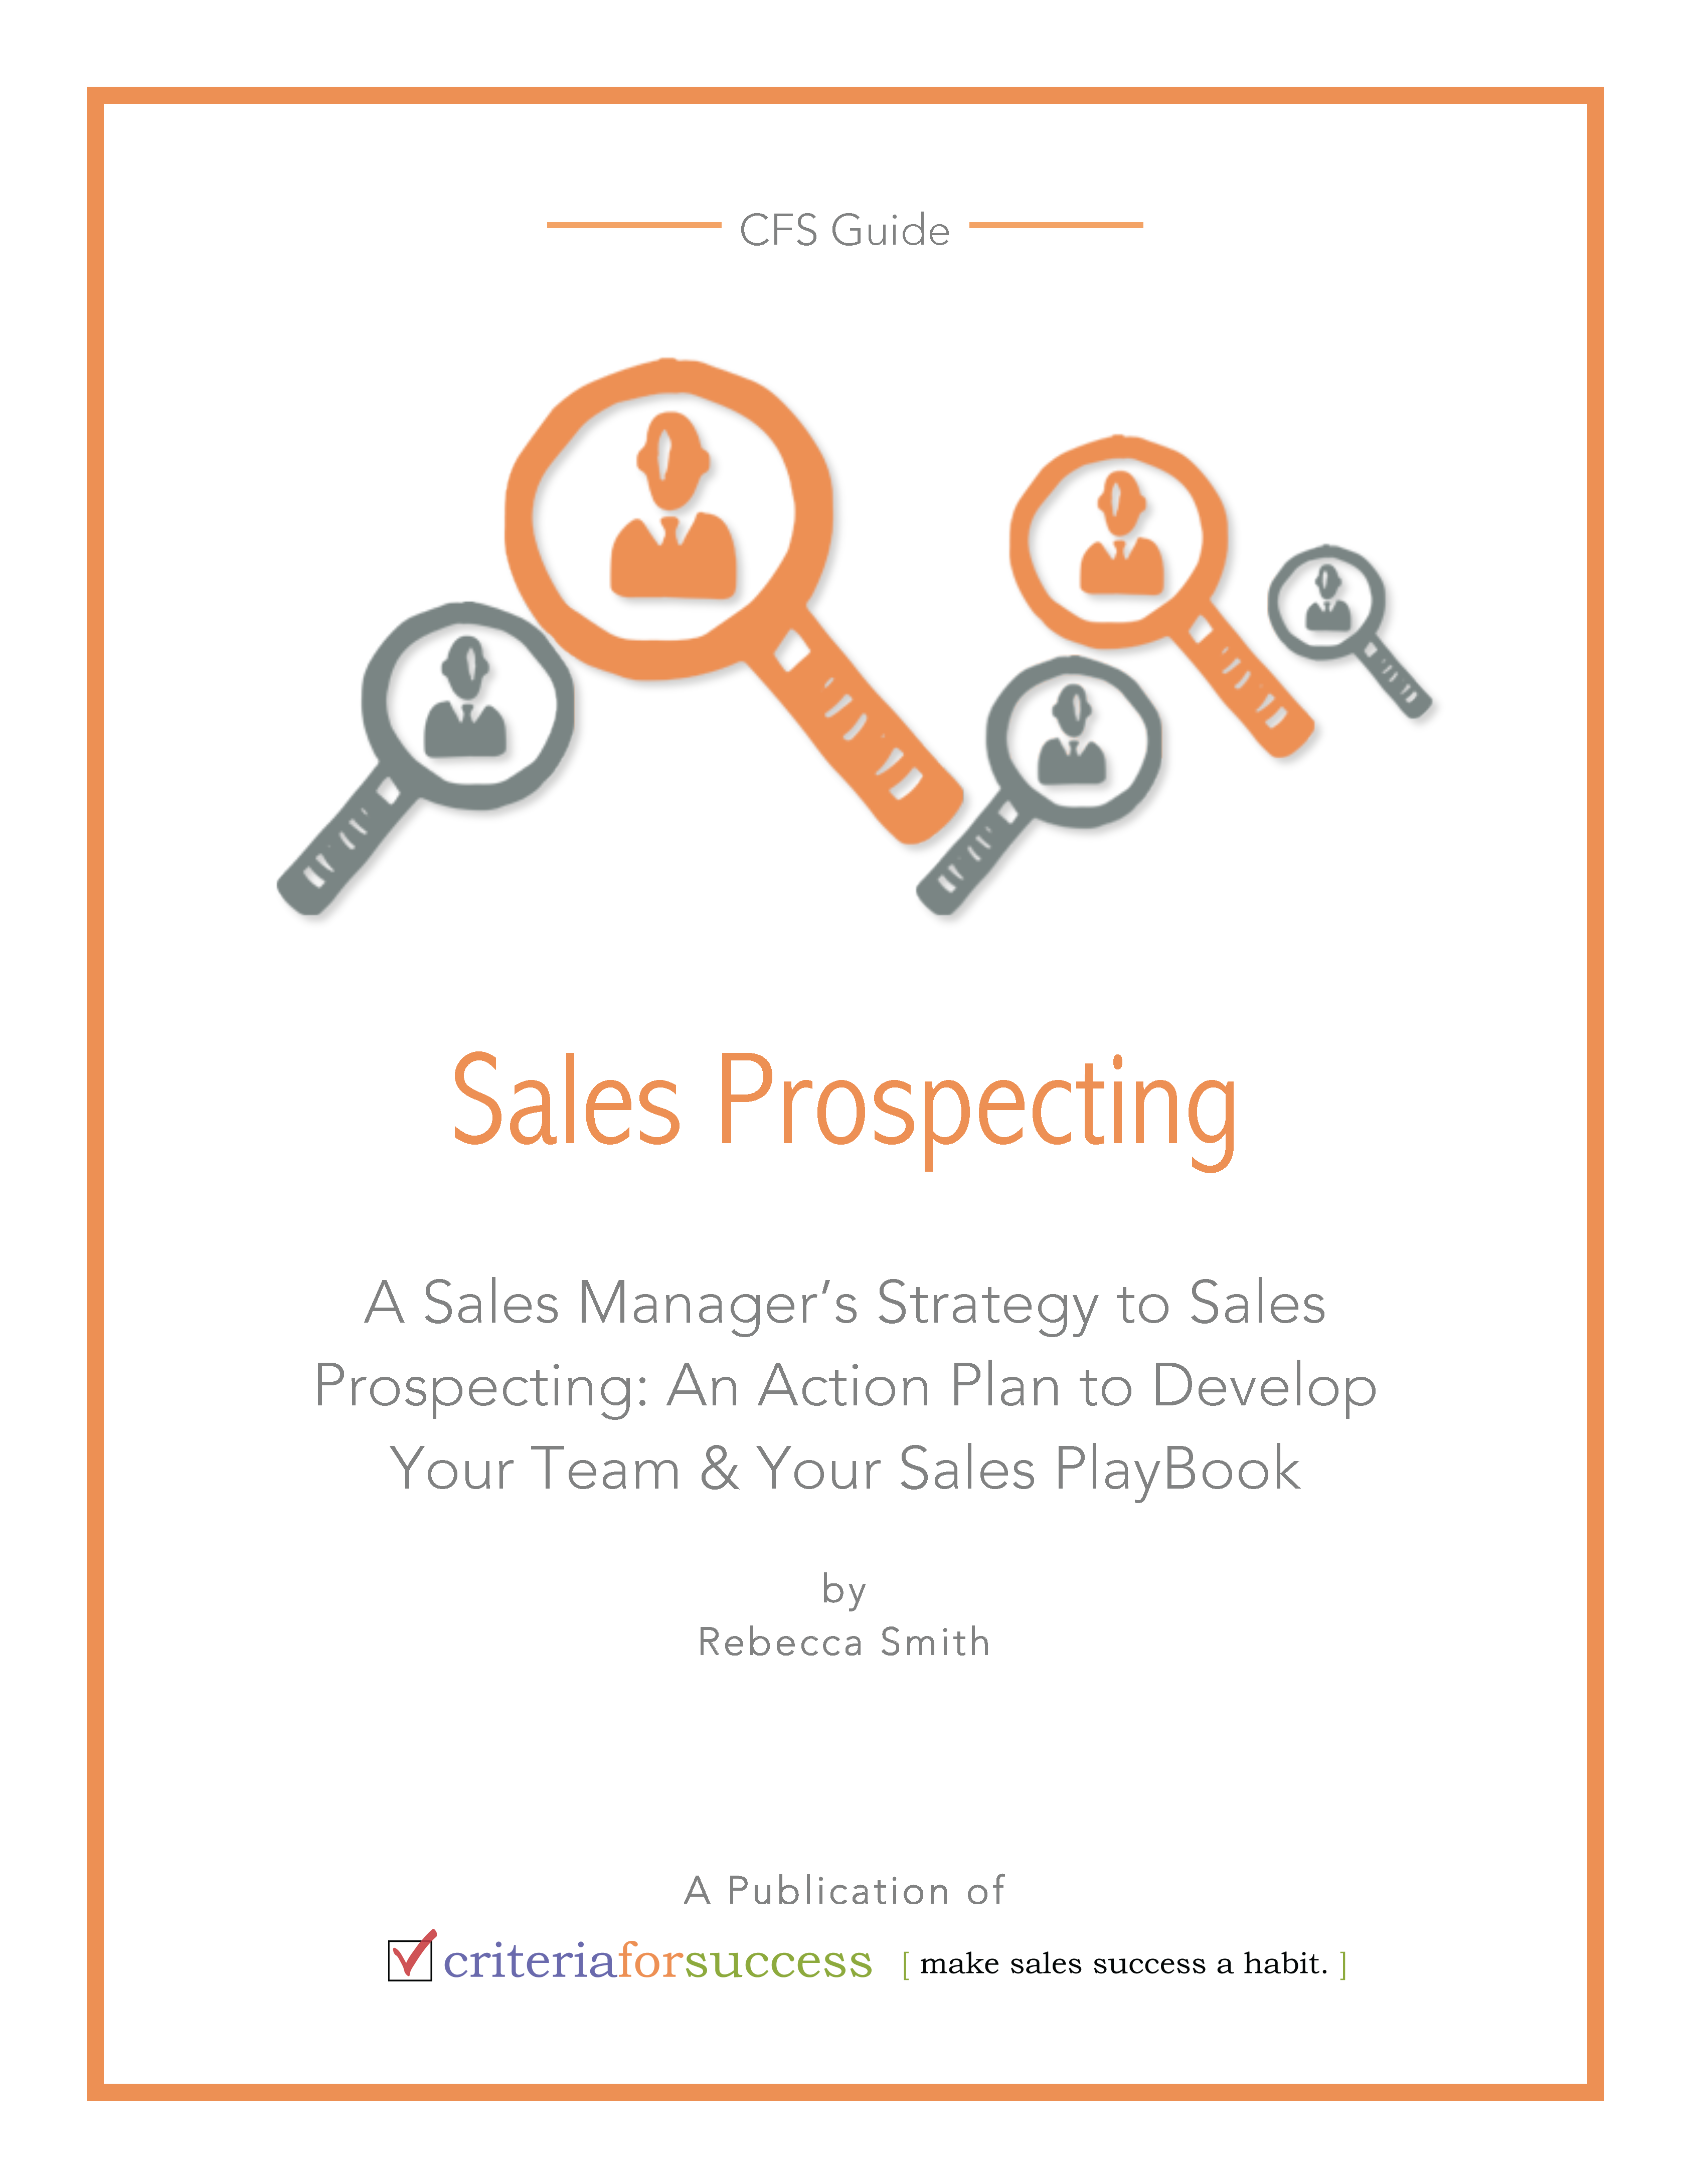 Cover_Page_The_CFS_Guide_to_Sales_Prospecting.png